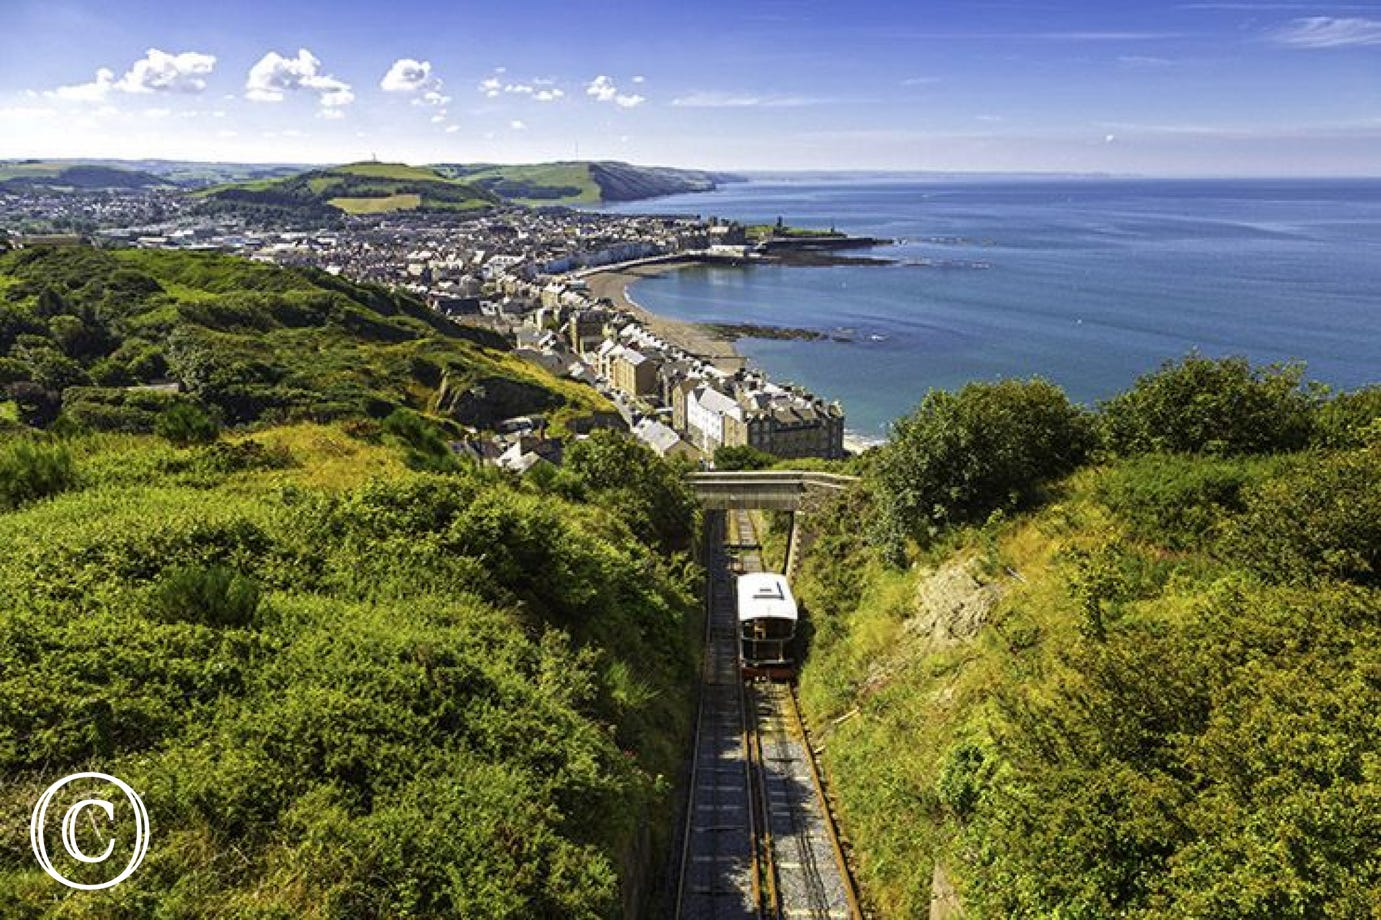 Aberystwyth's Cliff Railway with amazing views over town and coast